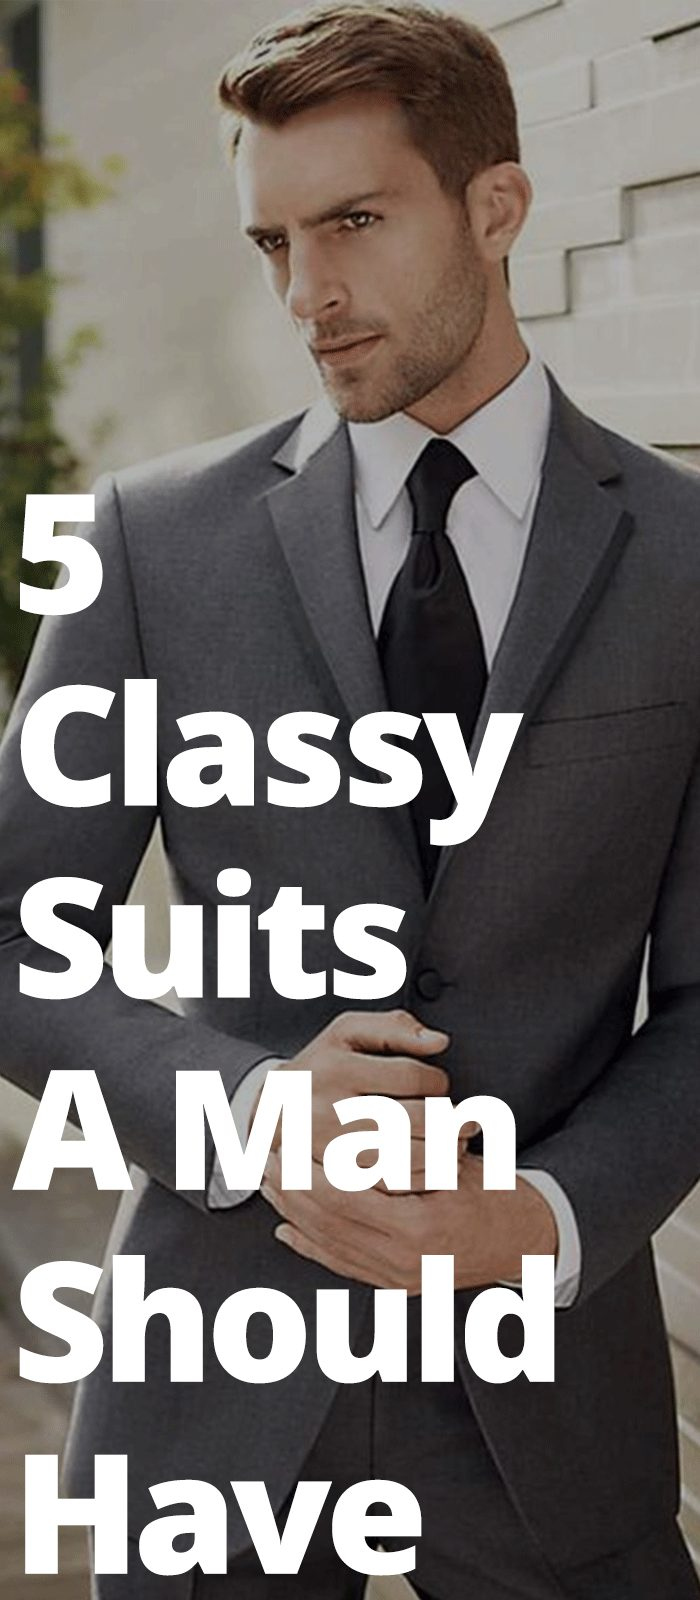 5 Classy Suits A Man Should Have